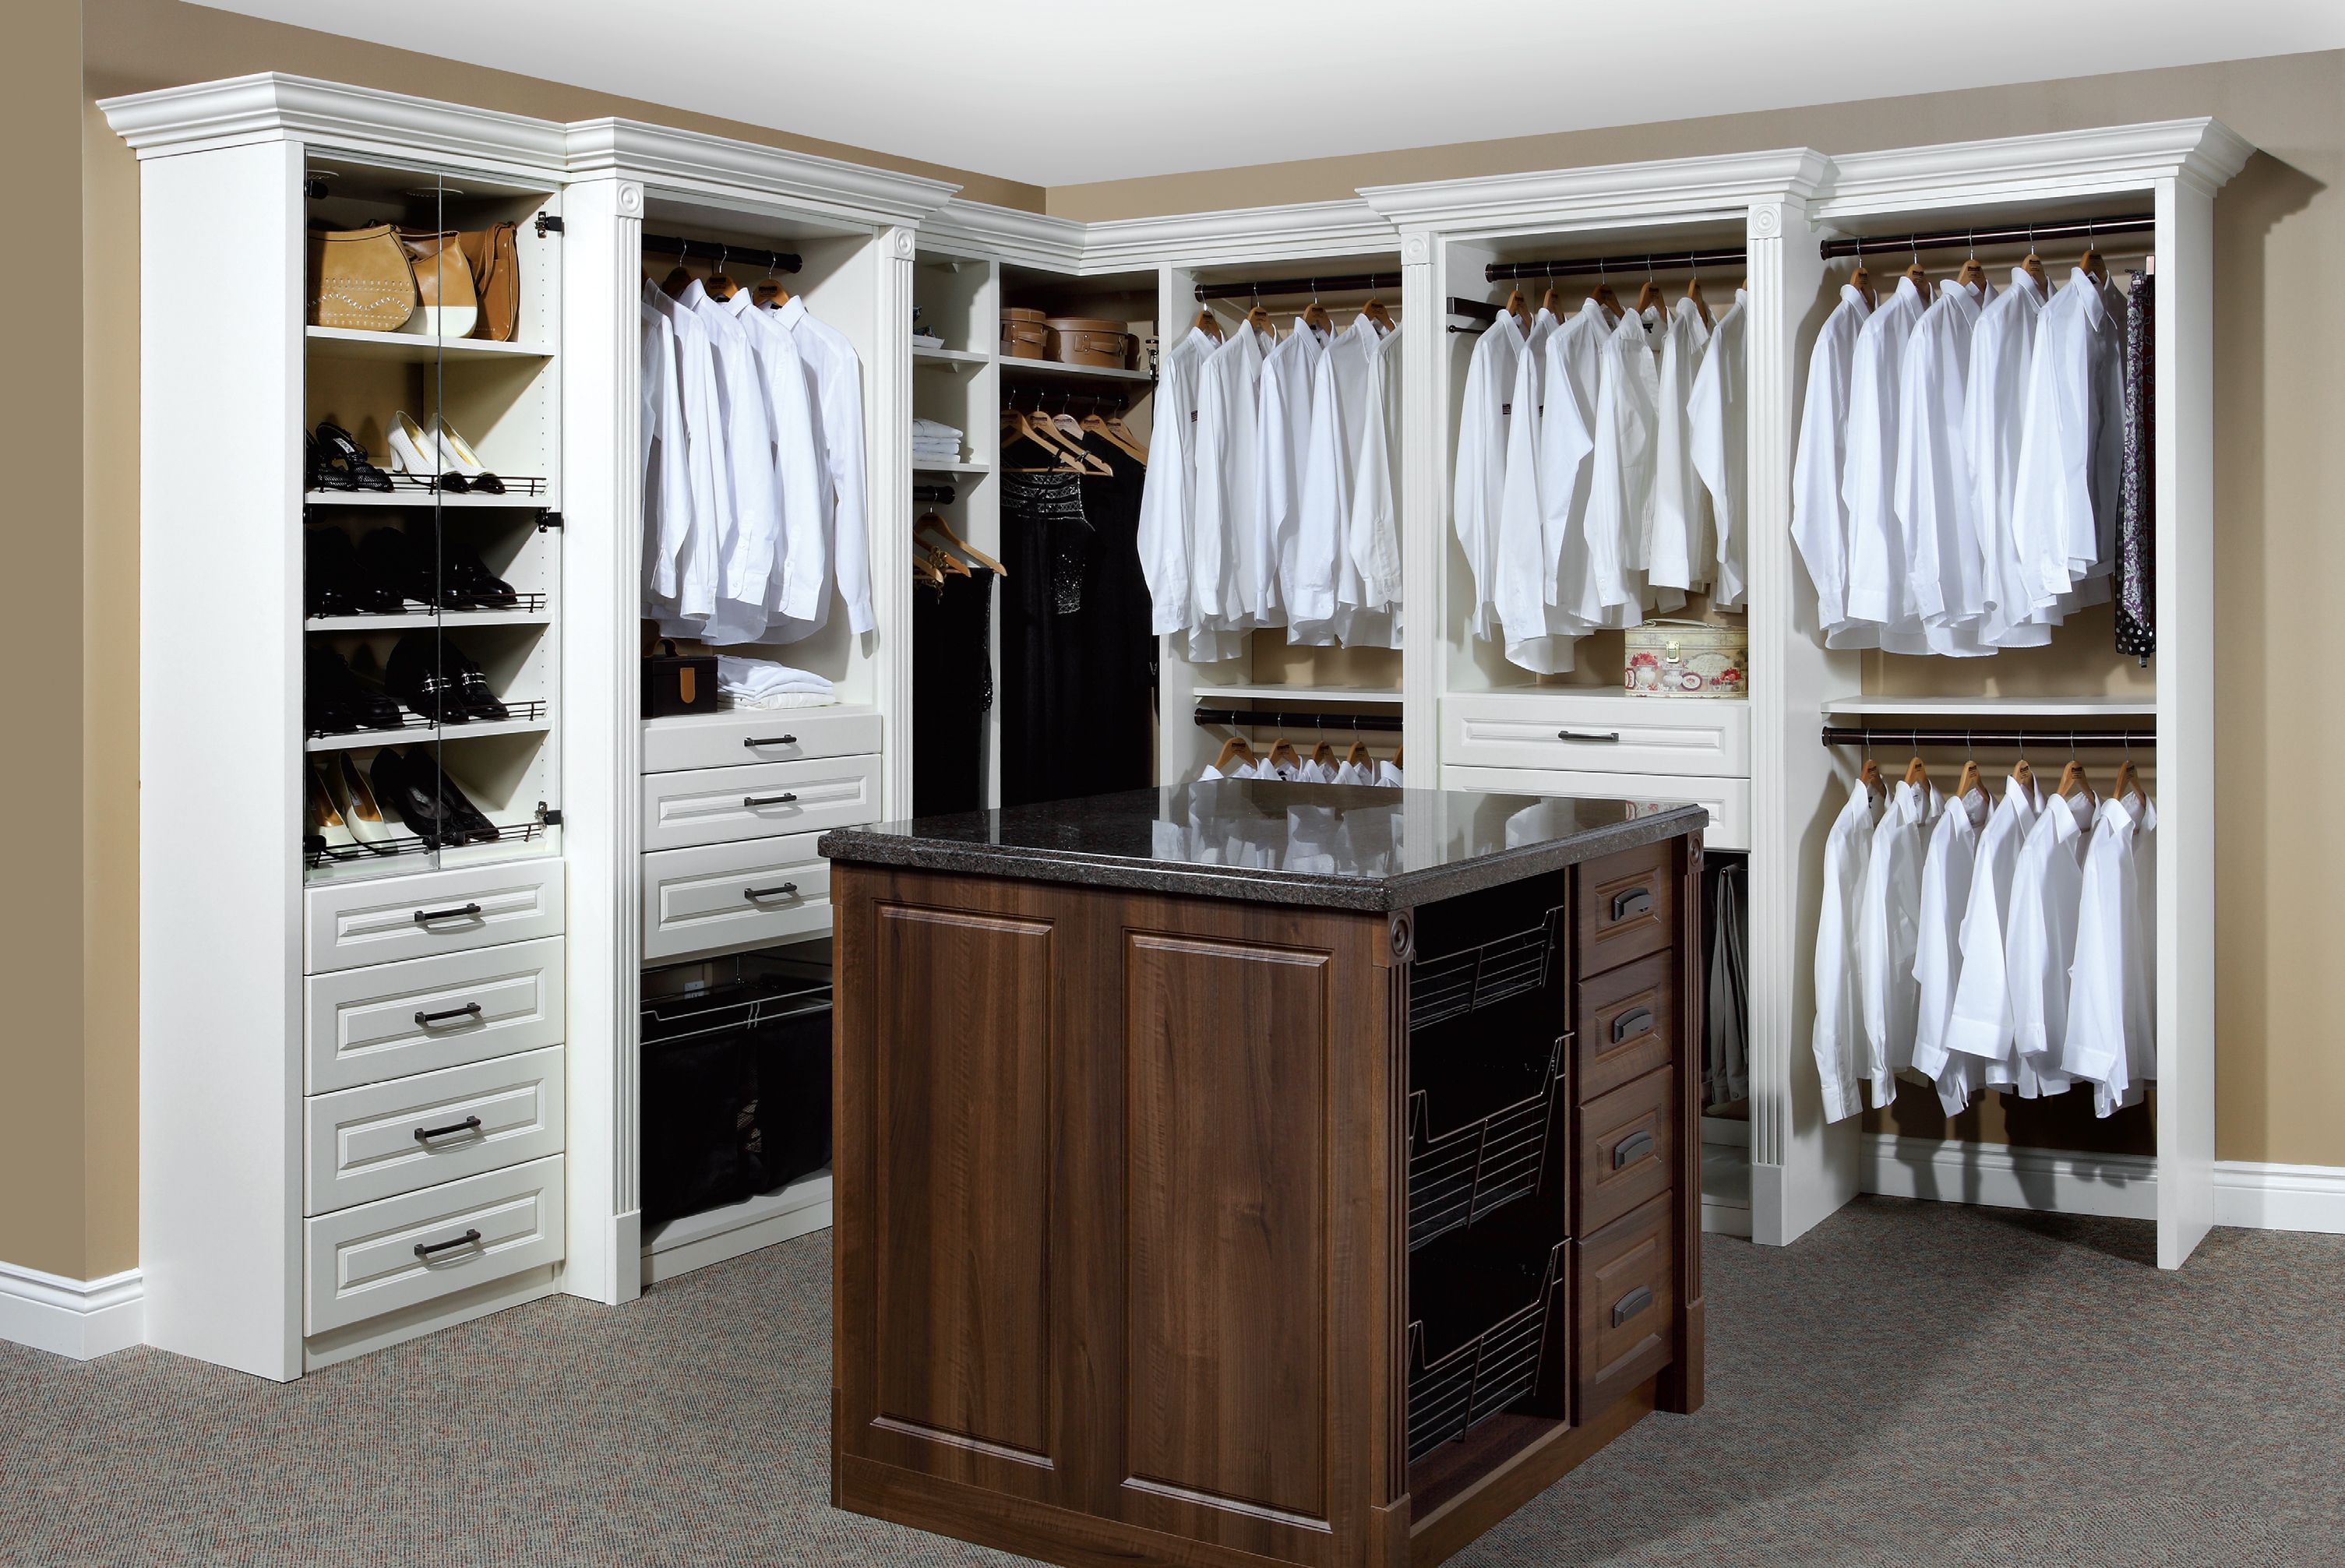 Awesome White Polished Open Wardrobe Design With Brown Square Dresser  Storage In Small Space White Closet